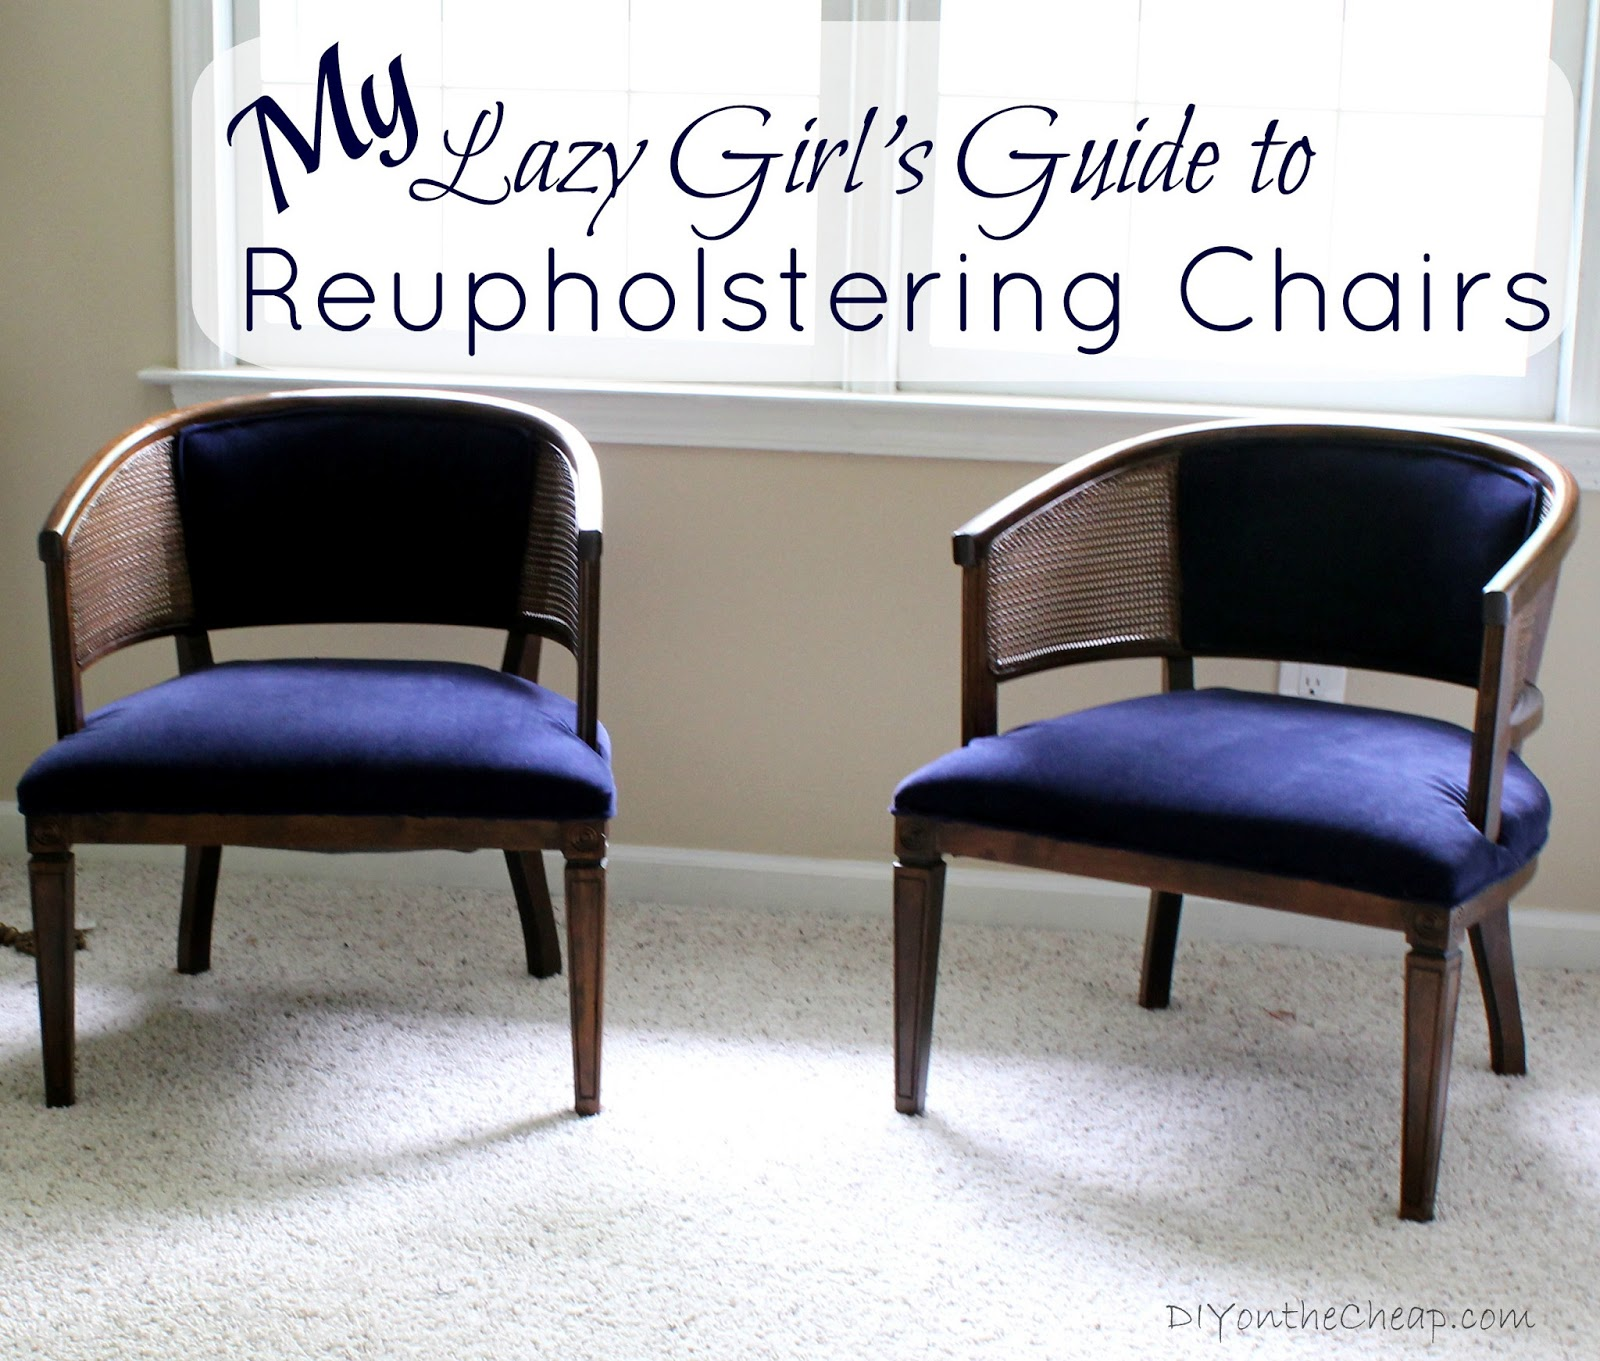 Office Chair Upholstery Fabric Parsons Slipcovers My Lazy Girl 39s Guide To Reupholstering Chairs A Tutorial